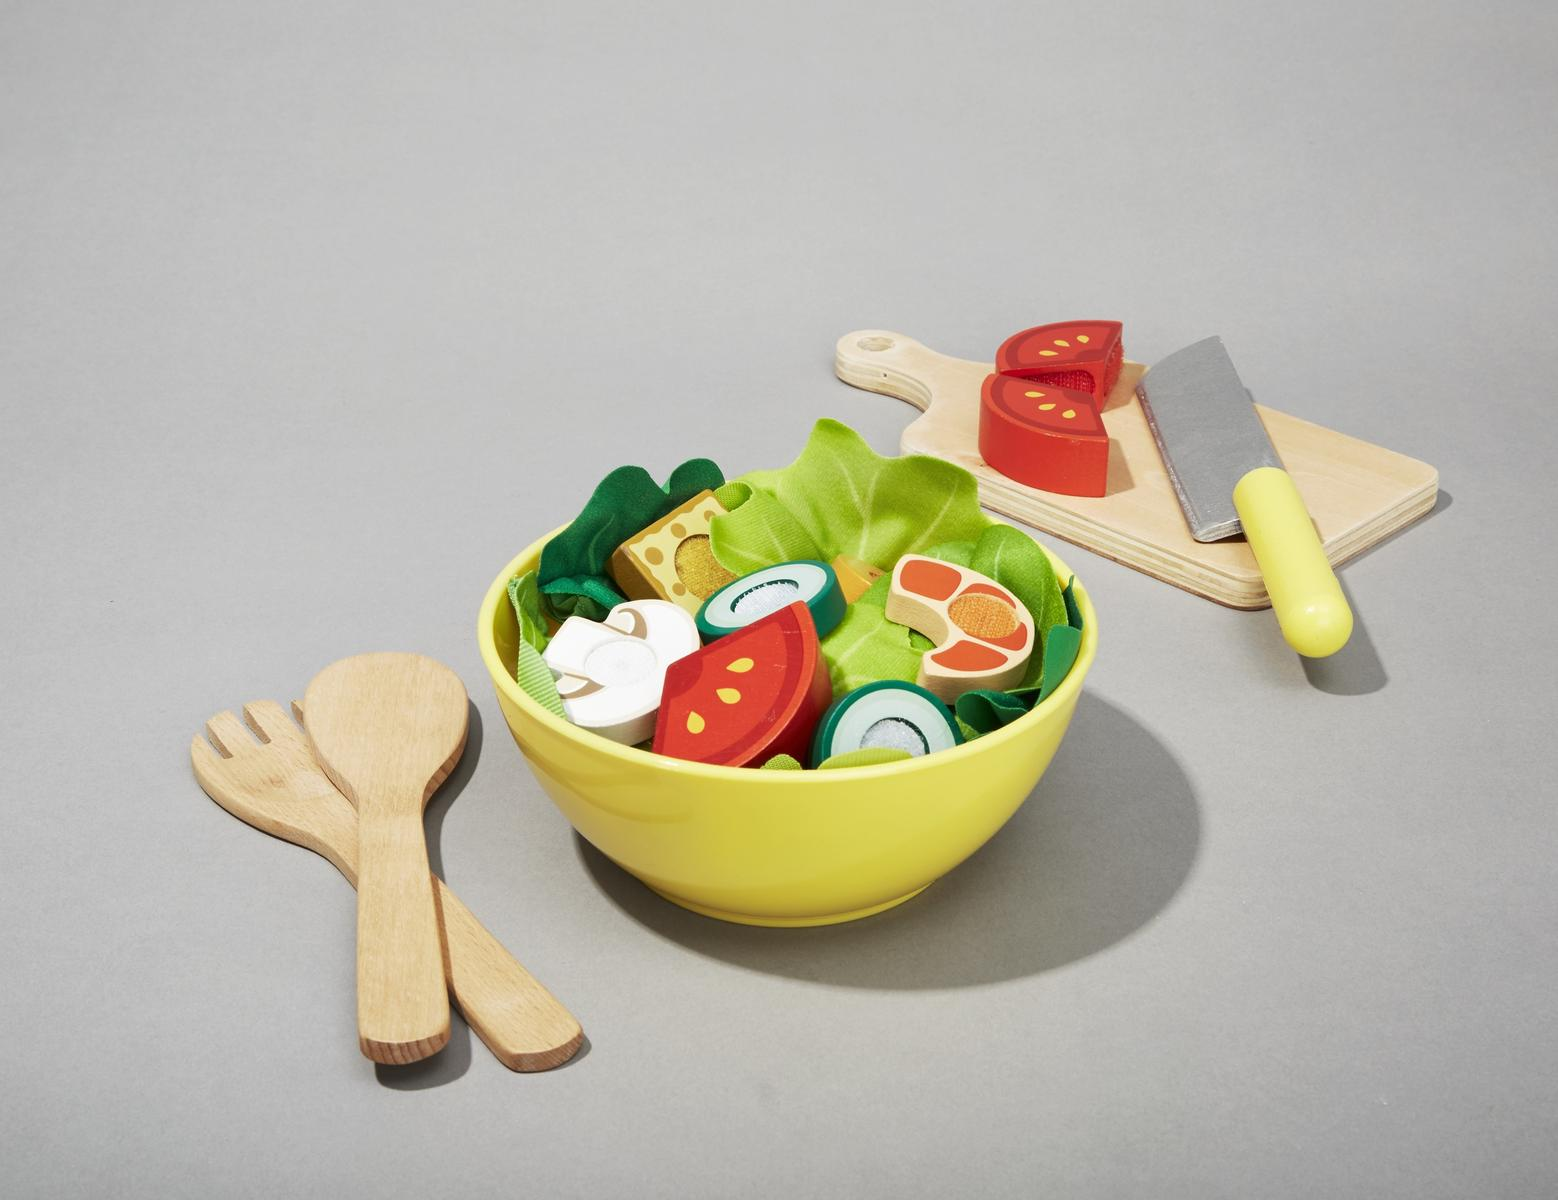 Best Gifts Slice & Toss Salad Set